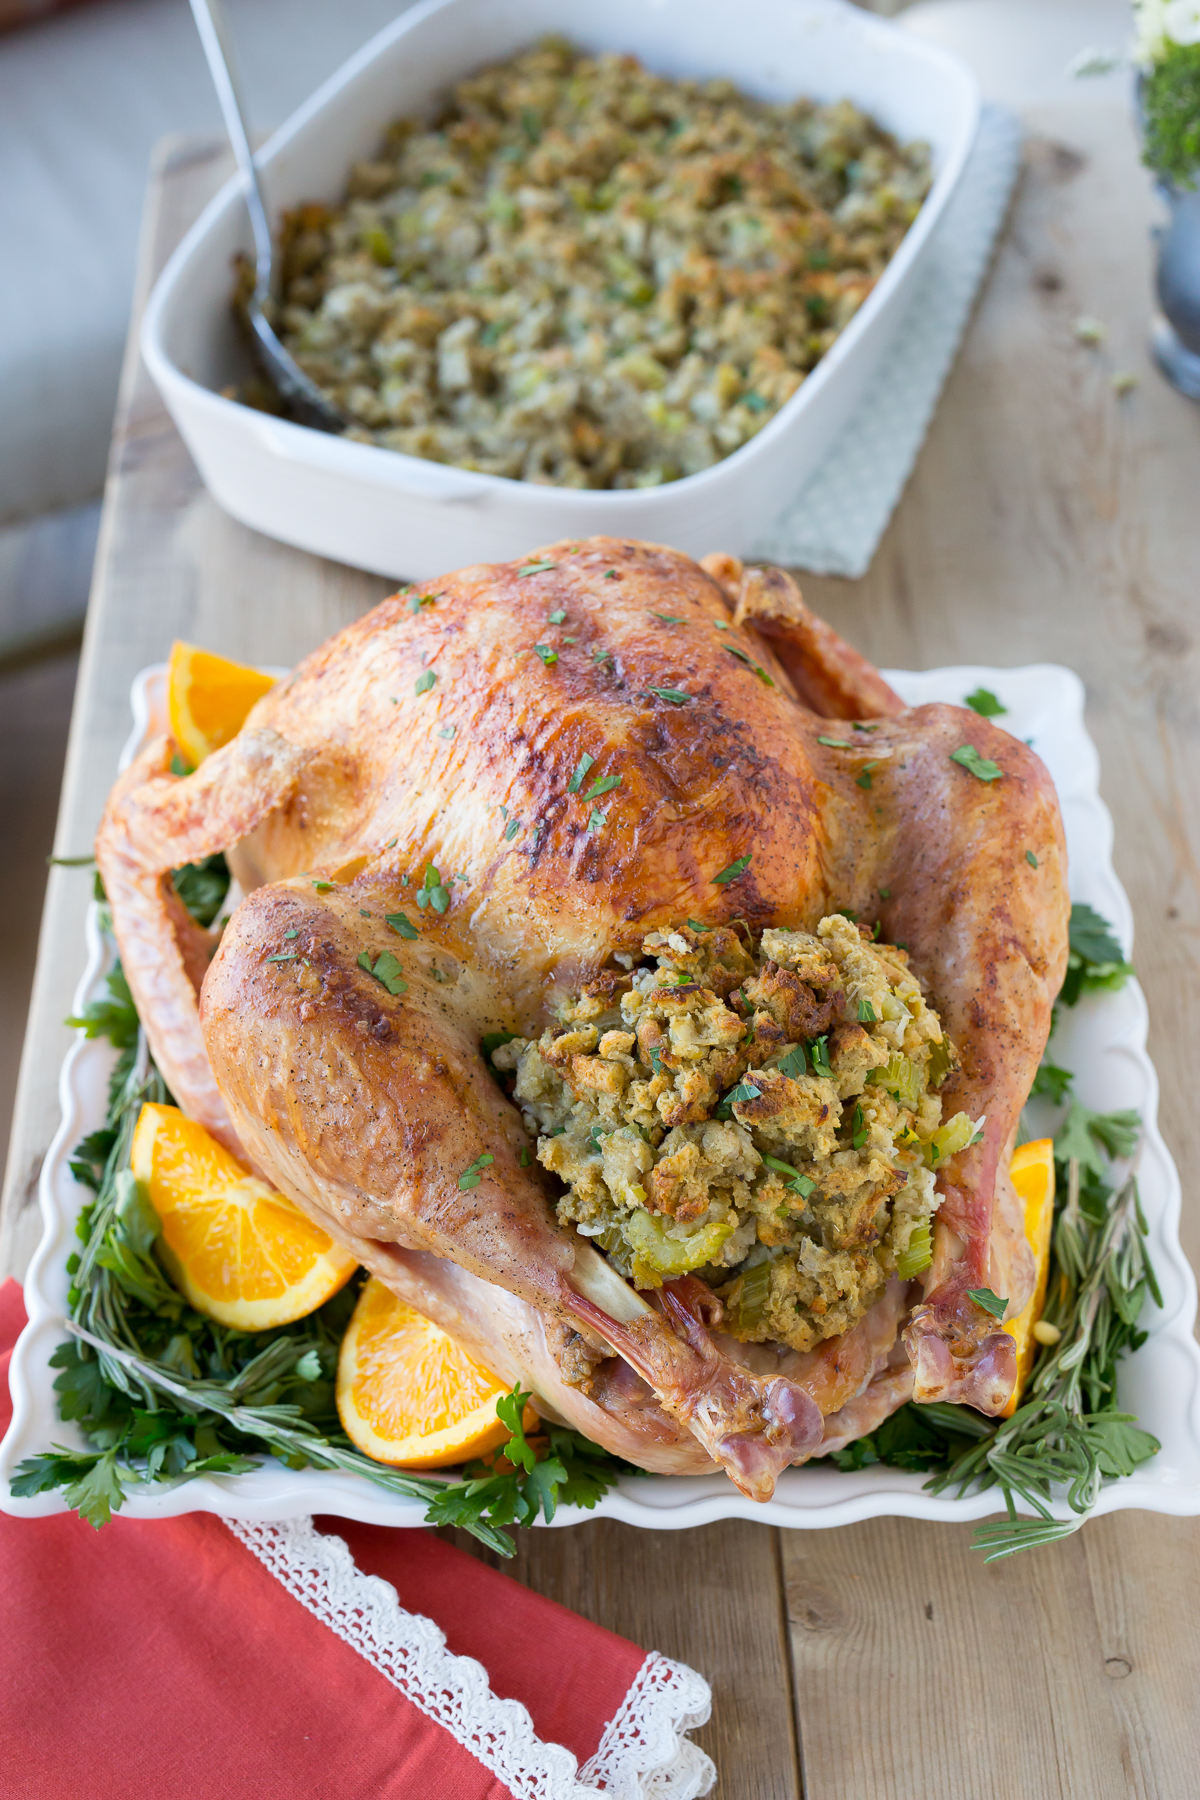 The Best Turkey Brine for Thanksgiving: How to Brine a Turkey for Thanksgiving